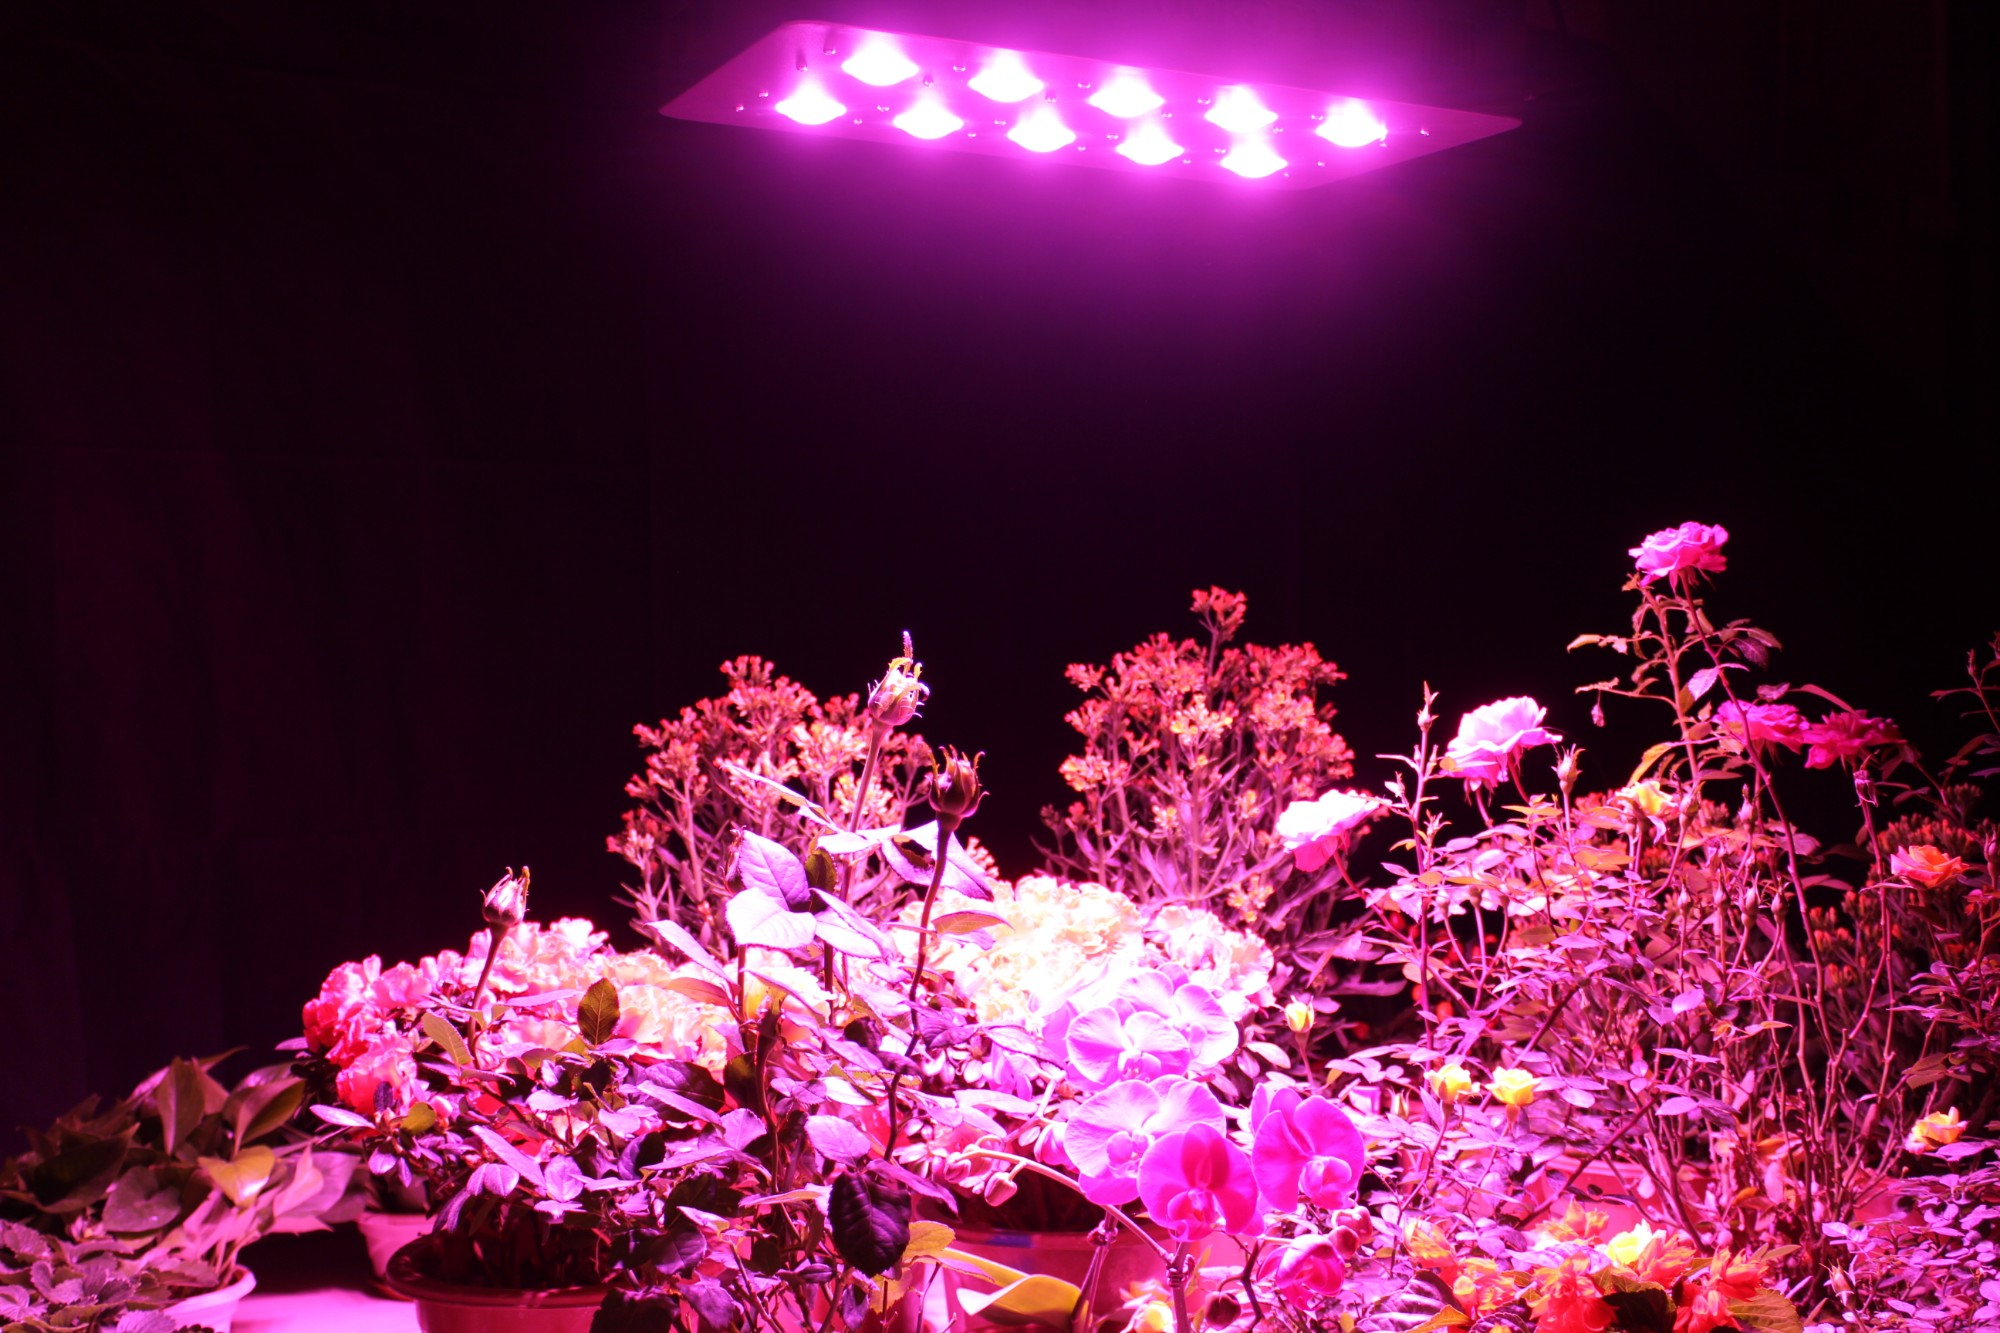 Wholesale 1000w grow light,High quality professional led grow light,1000 watt led grow light Promotions